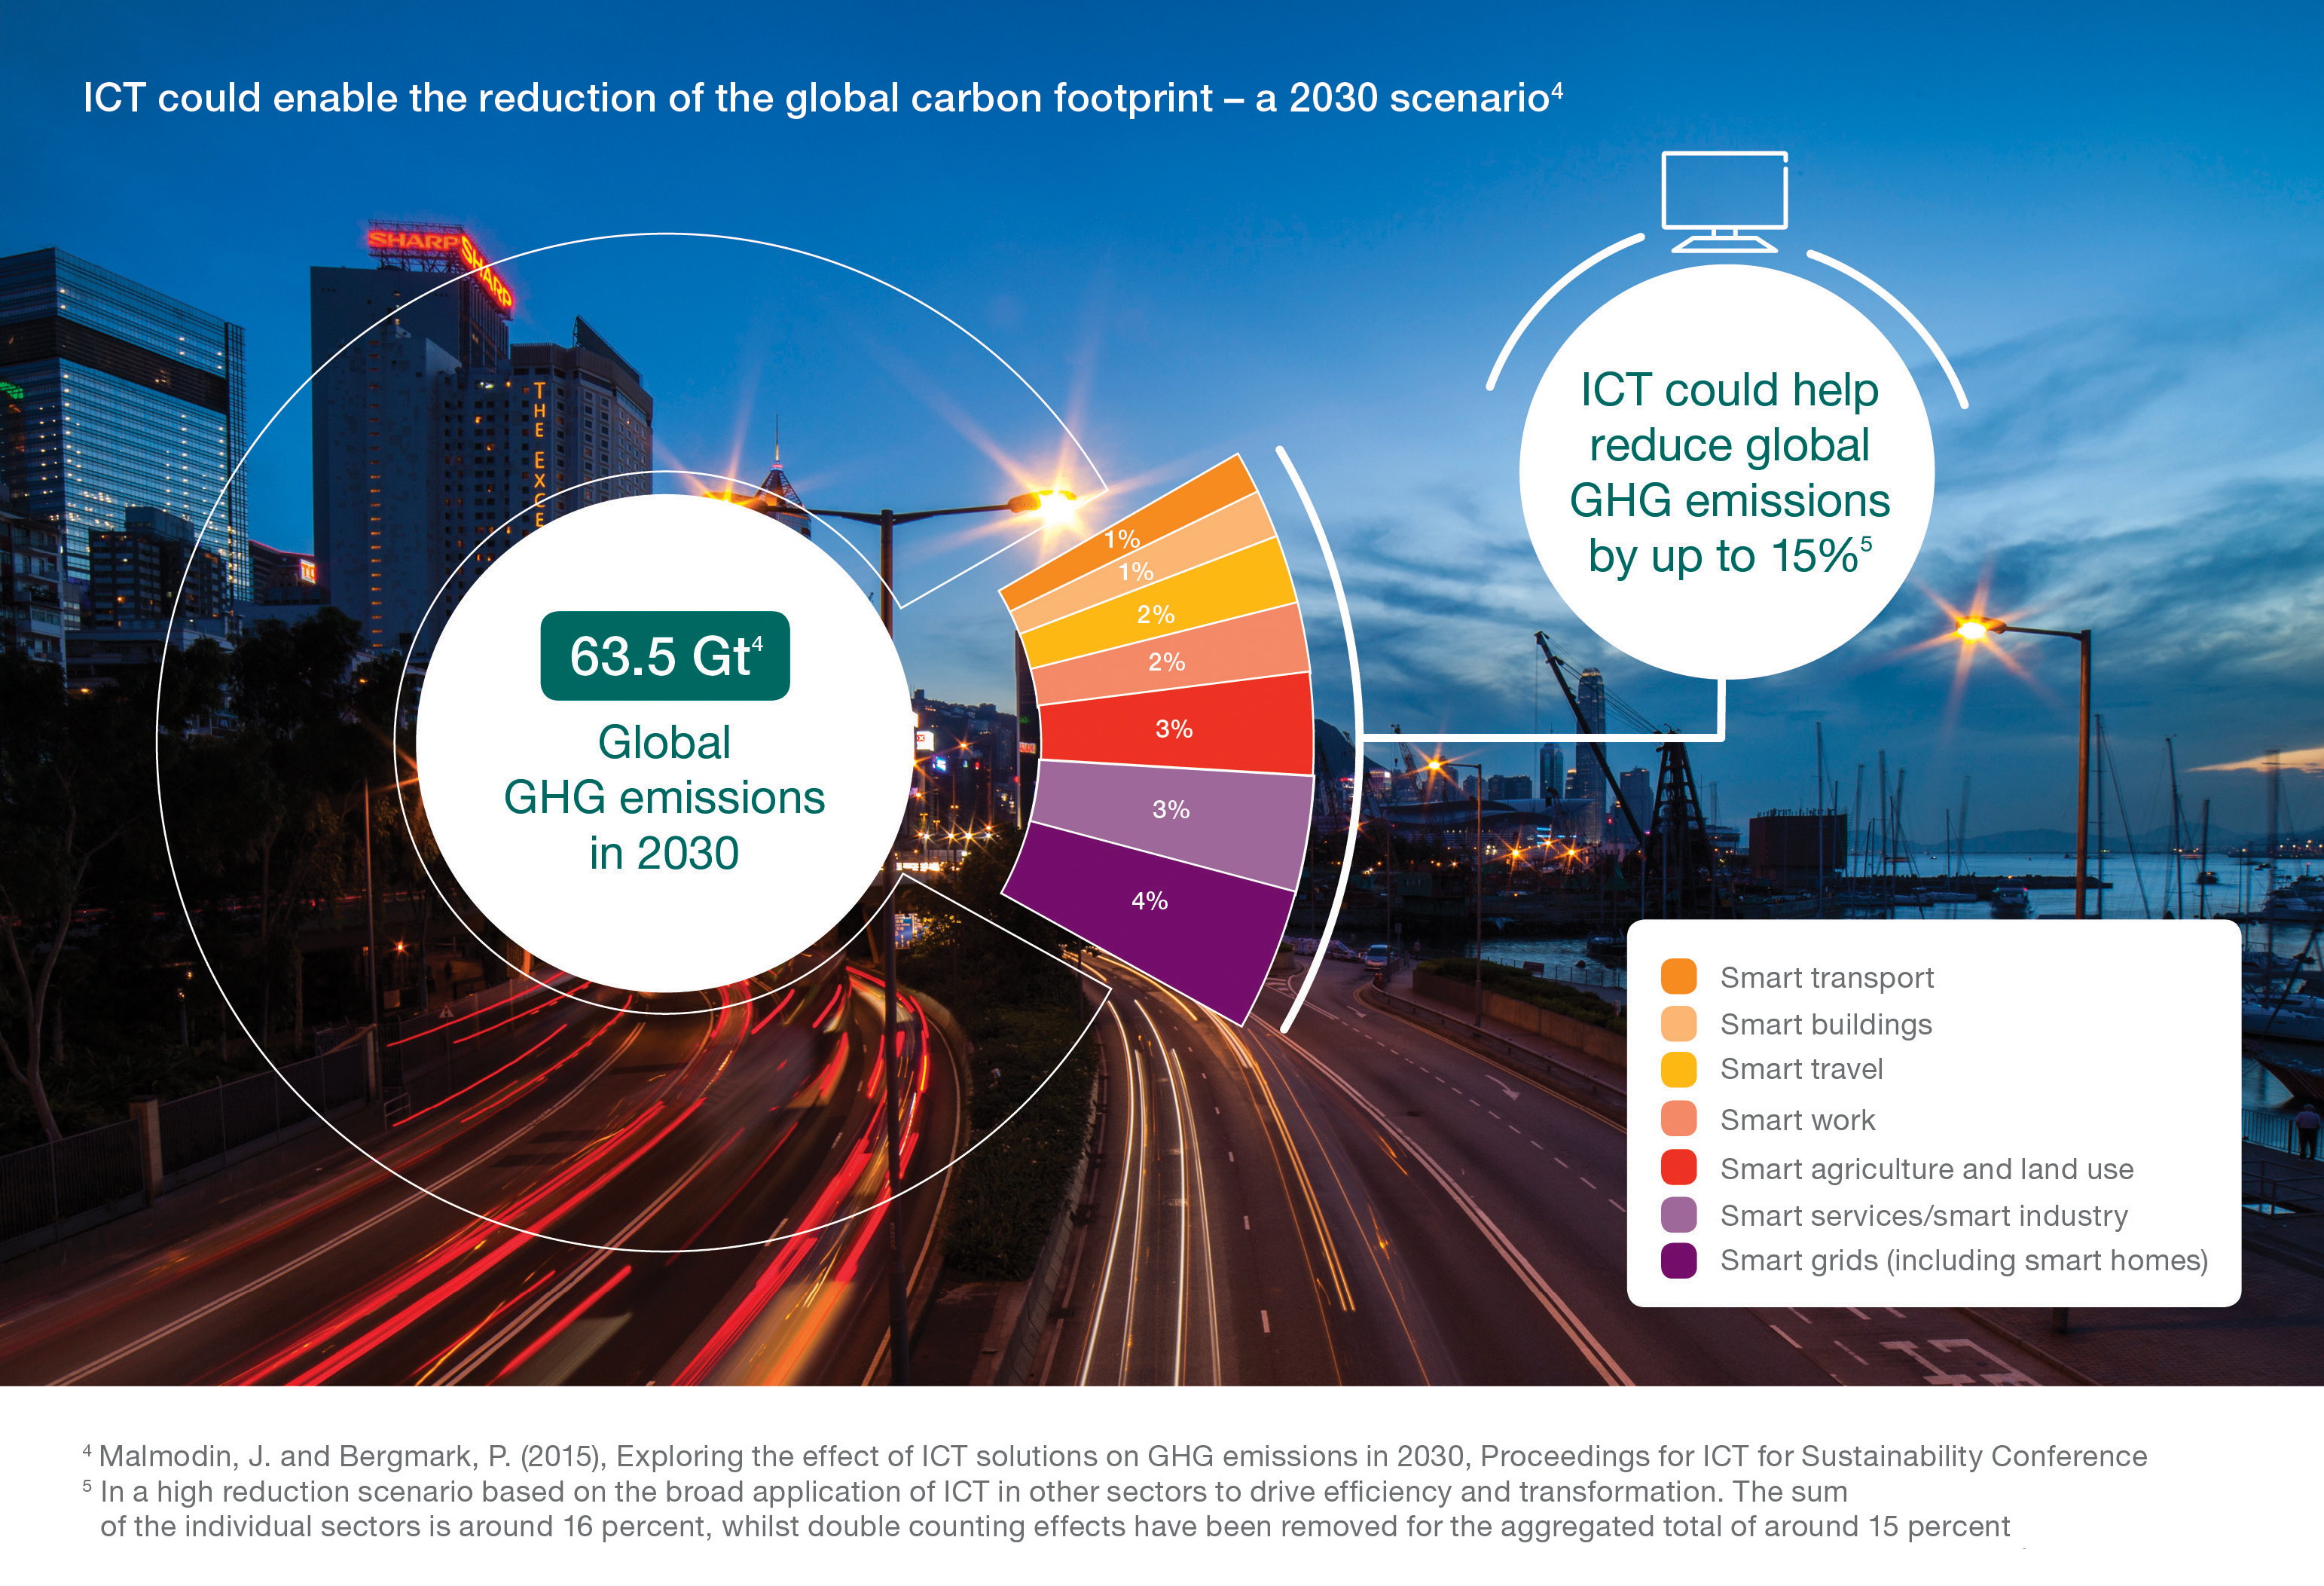 Graphic - ICT could enable reduction of the global carbon footptrint